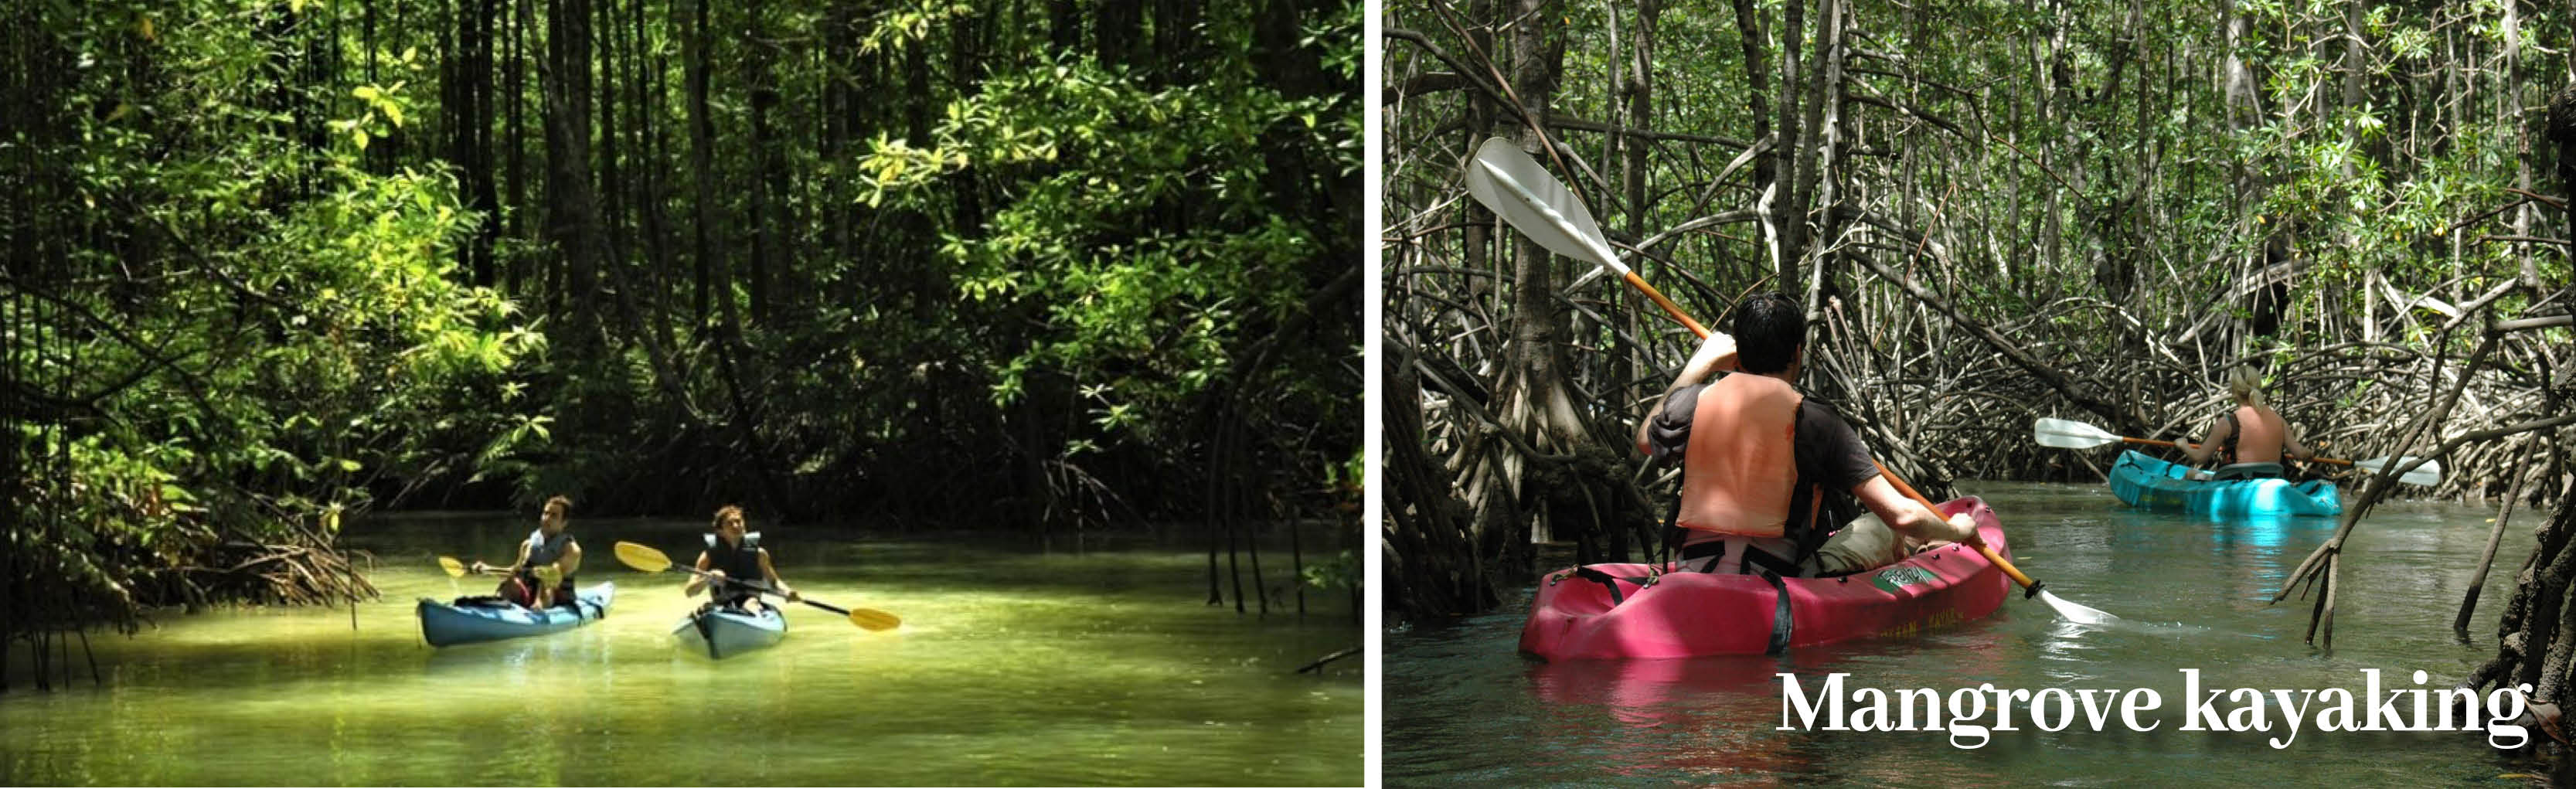 Costa Rica Holiday Offer excursions - Mangrove Kayaking